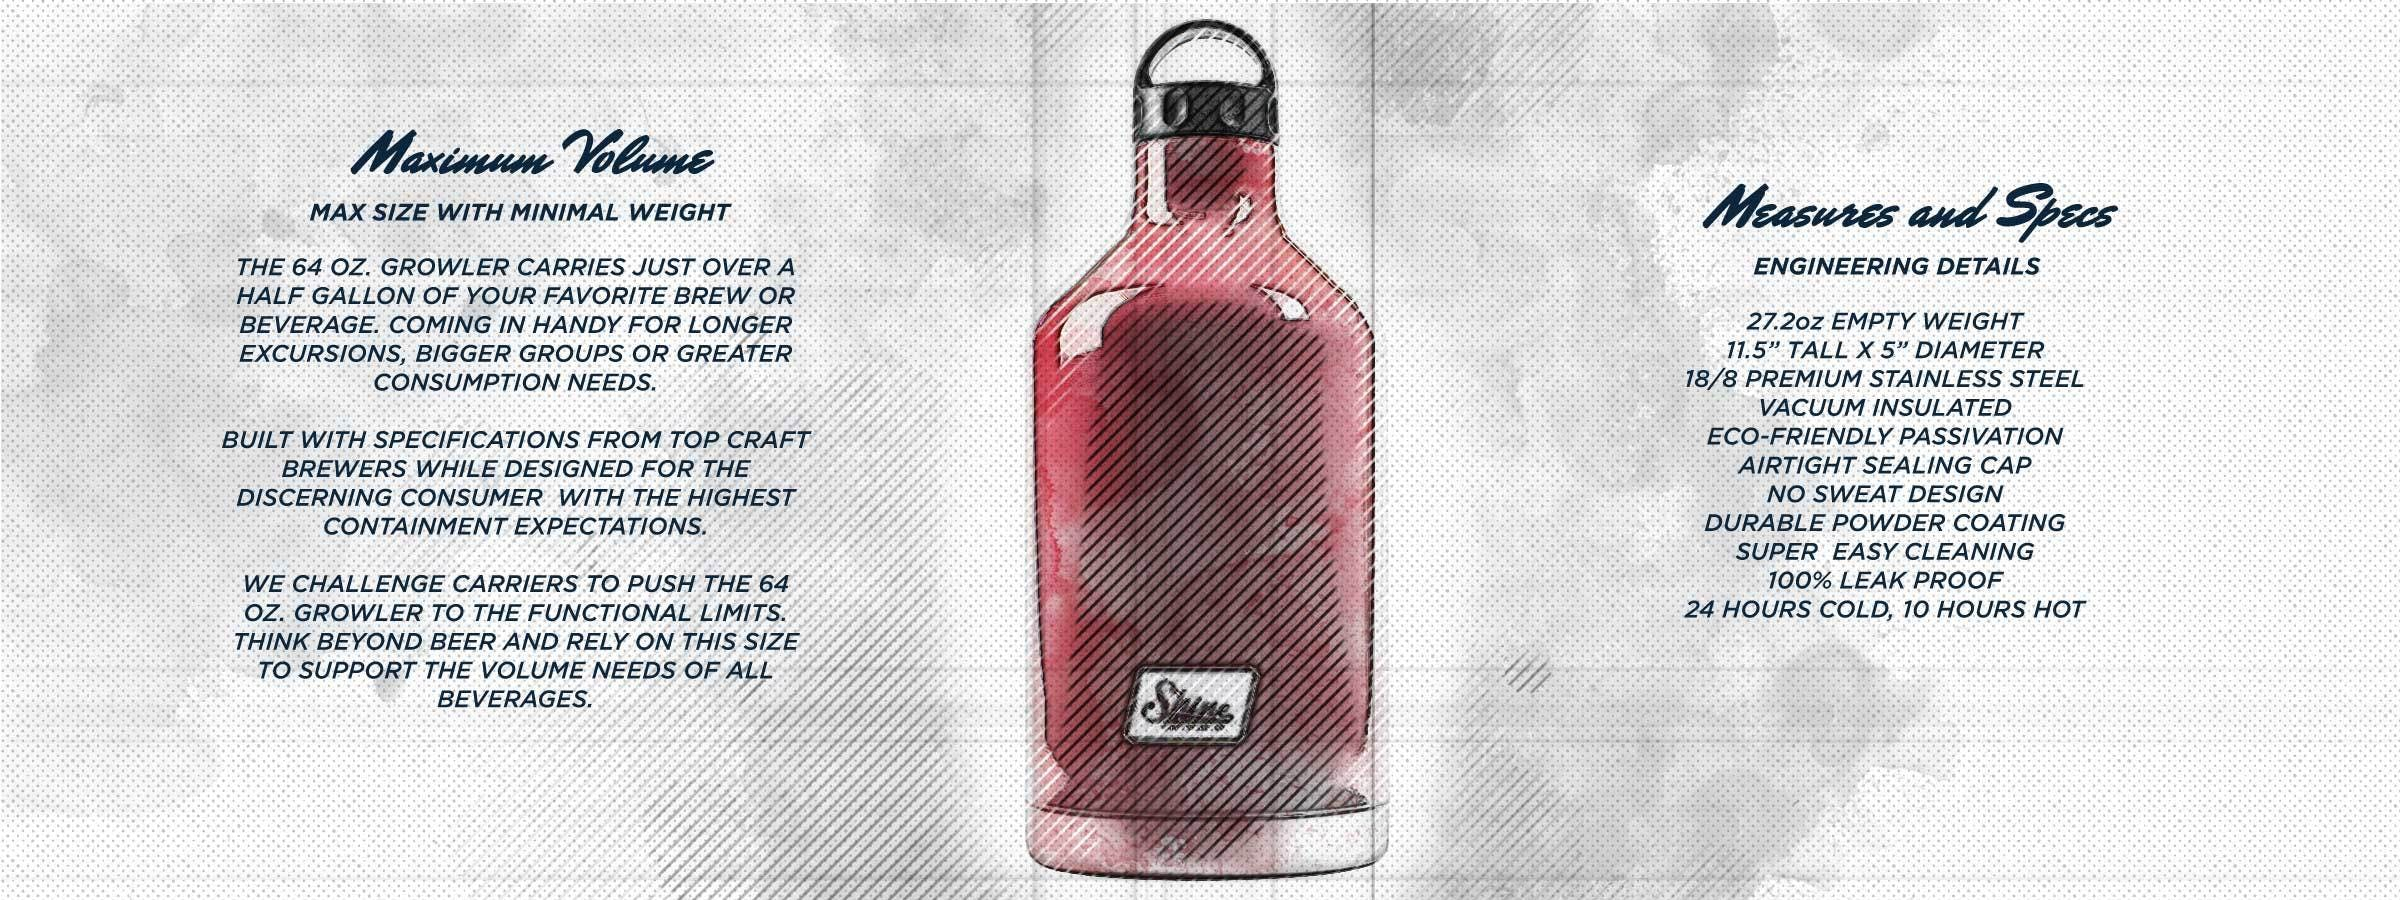 64 Oz. 'We Can Do It' Growler - sold by Shine Craft Vessel Co.